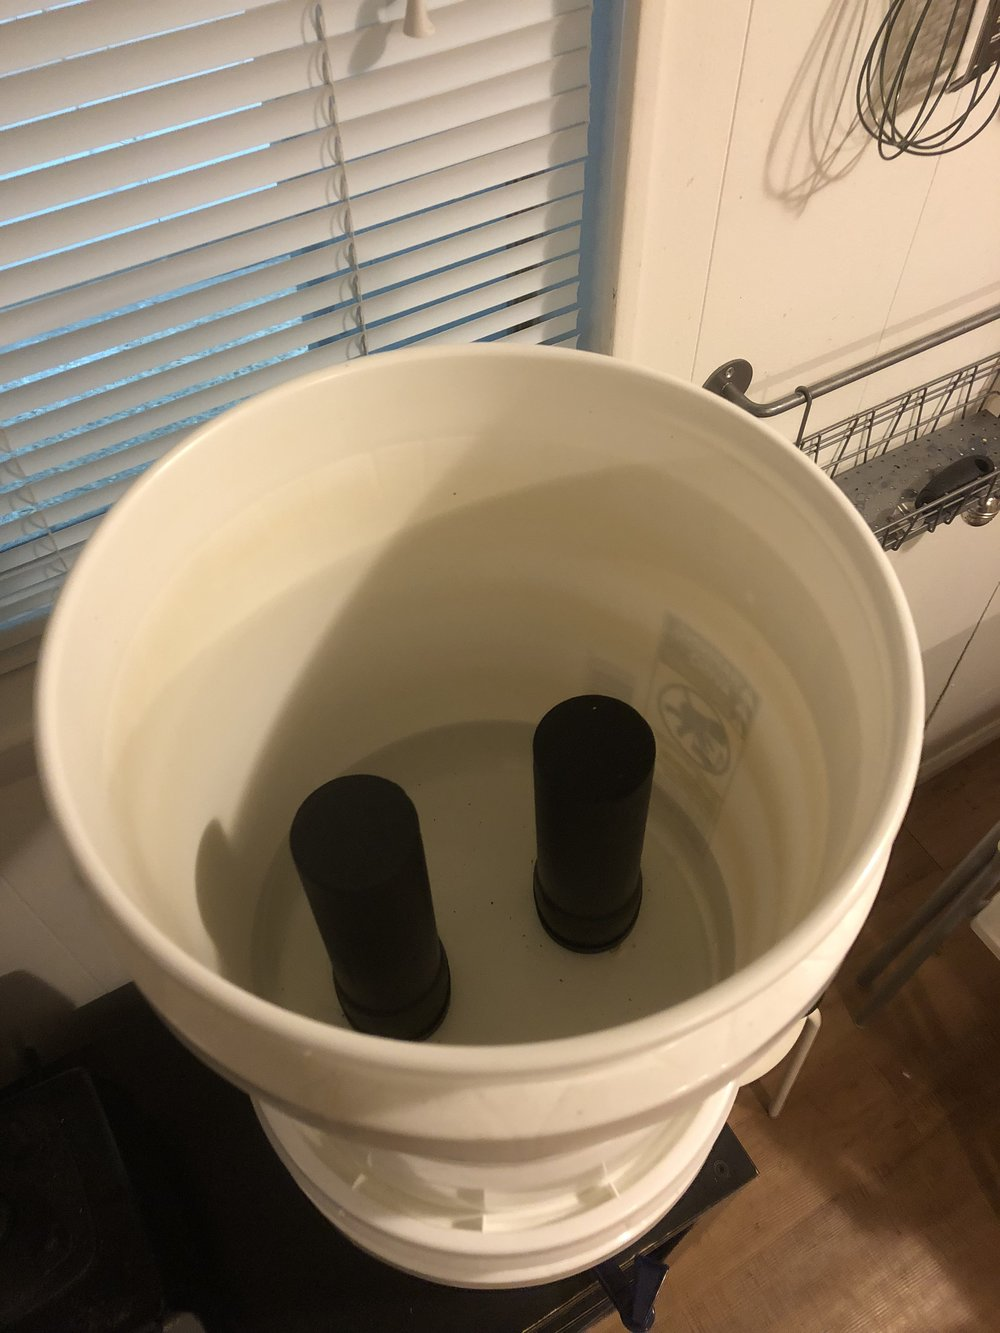 Now one of the major reasons the Berkey filters are so much more effective at removing impurities is because the water flows through the filters at a much ...